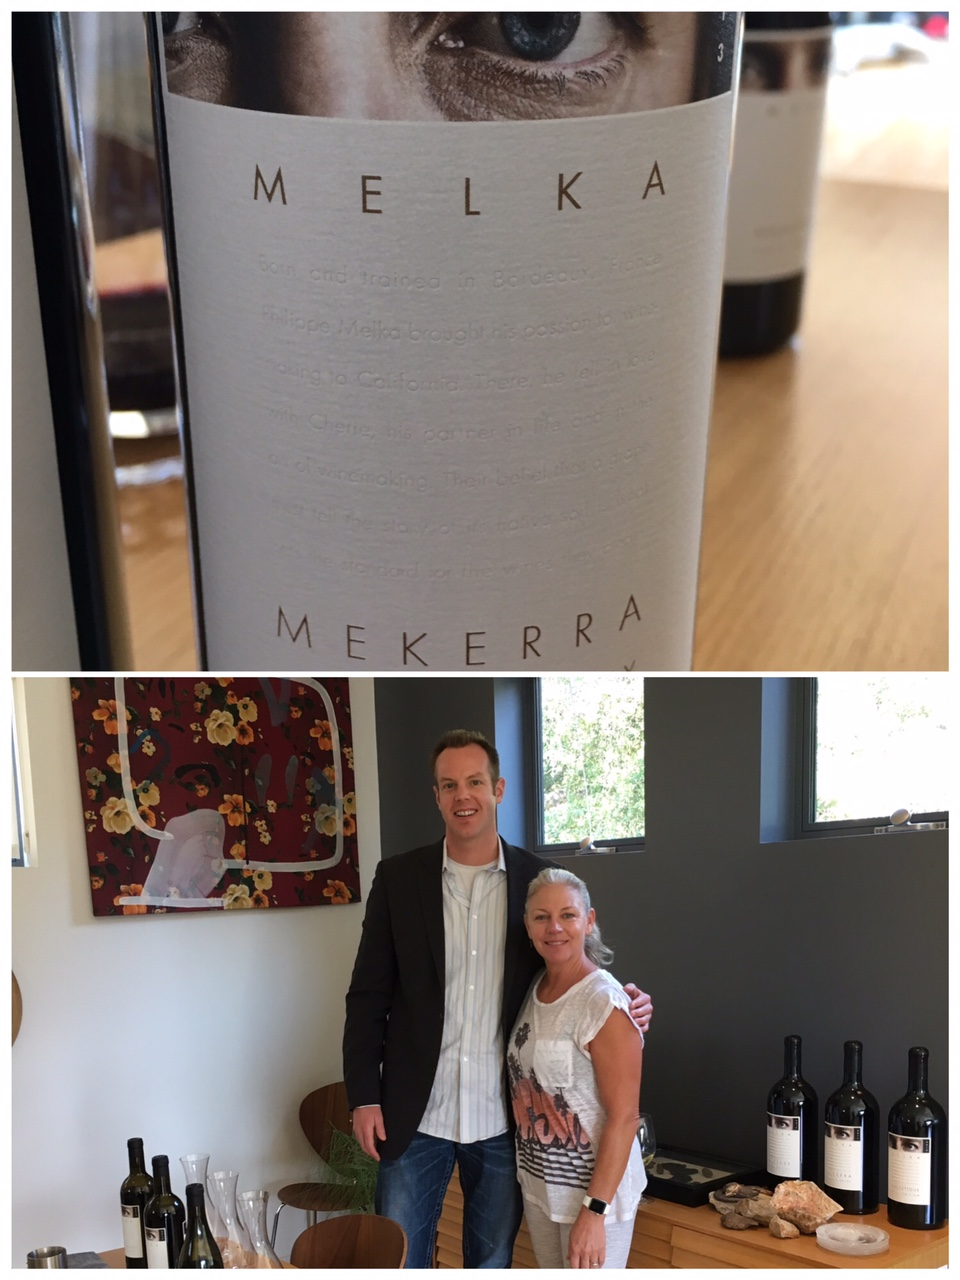 I had a great time hanging out with Cherie Melka, co-proprietor of Melka Wines.